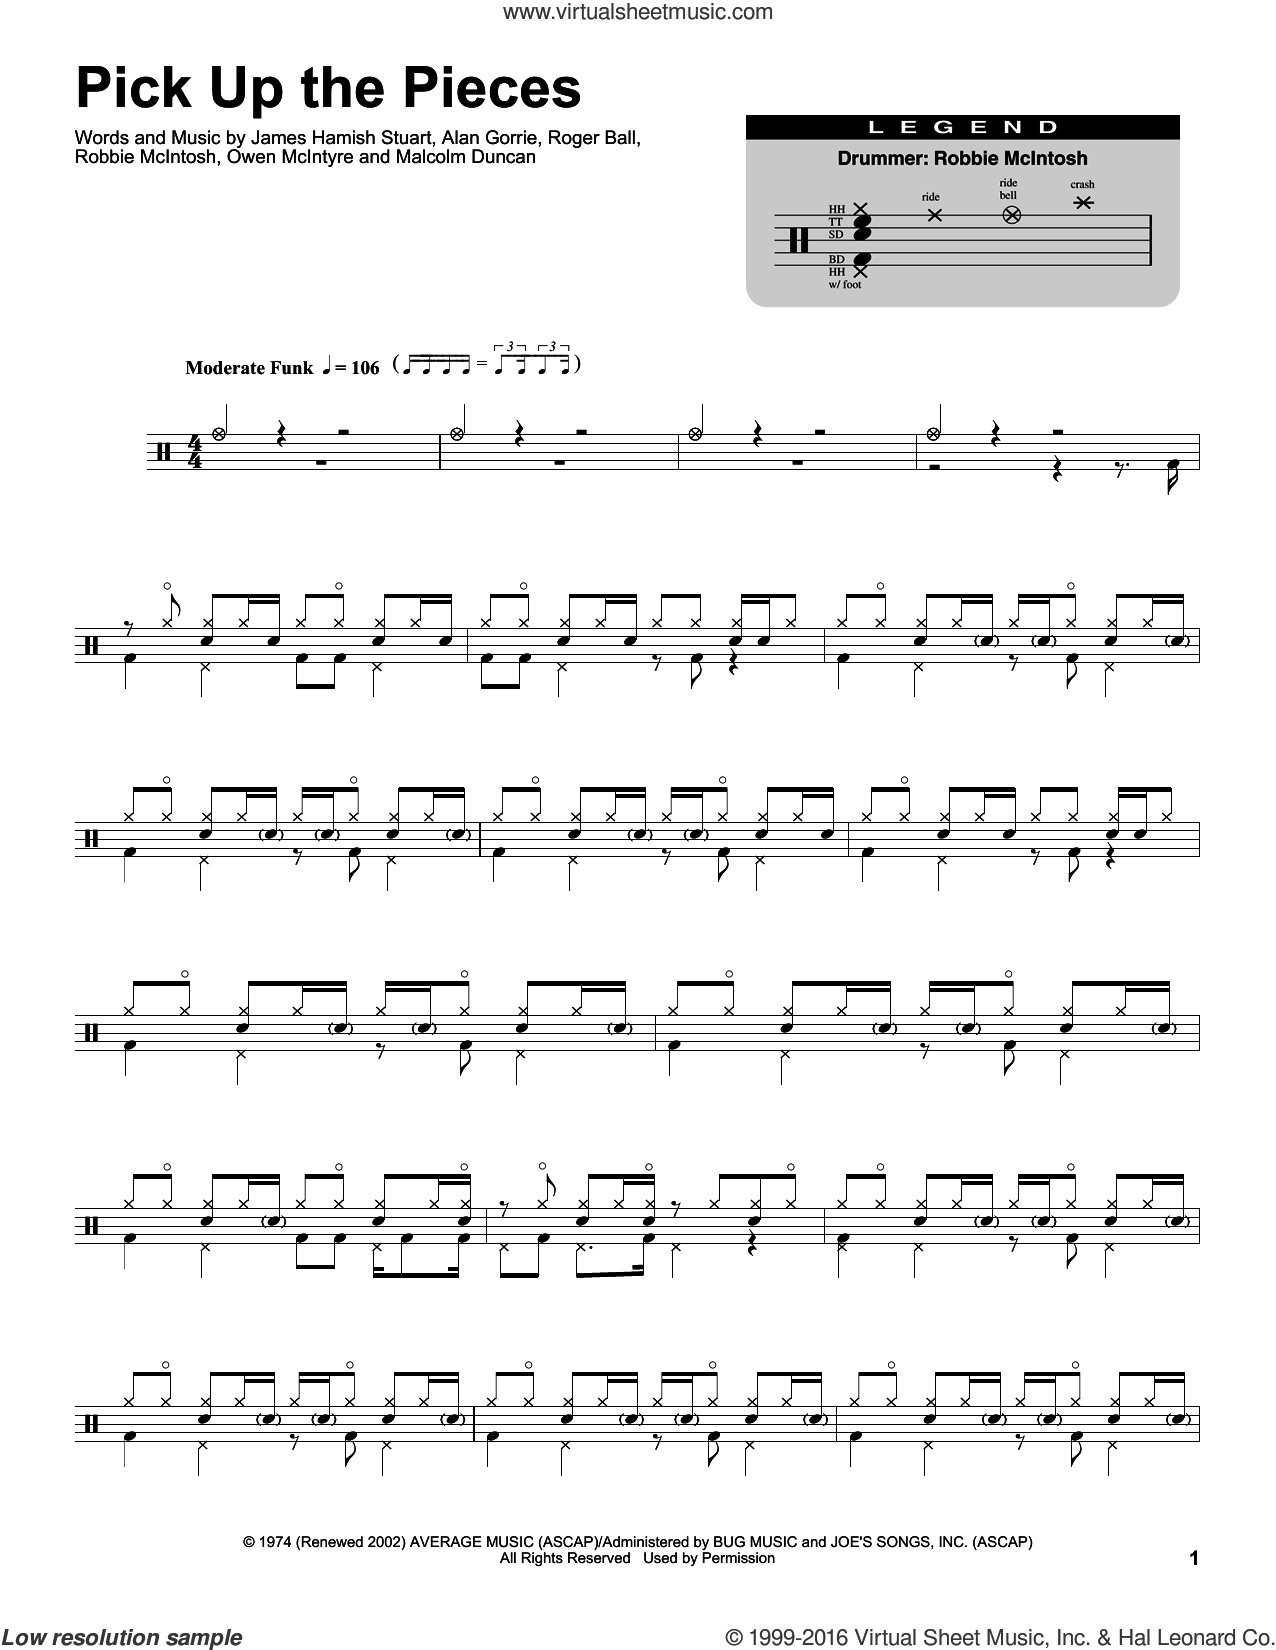 Pick Up The Pieces sheet music for drums by Average White Band, Alan Gorrie, Malcolm Duncan, Robbie McIntosh and Roger Ball, intermediate drums. Score Image Preview.